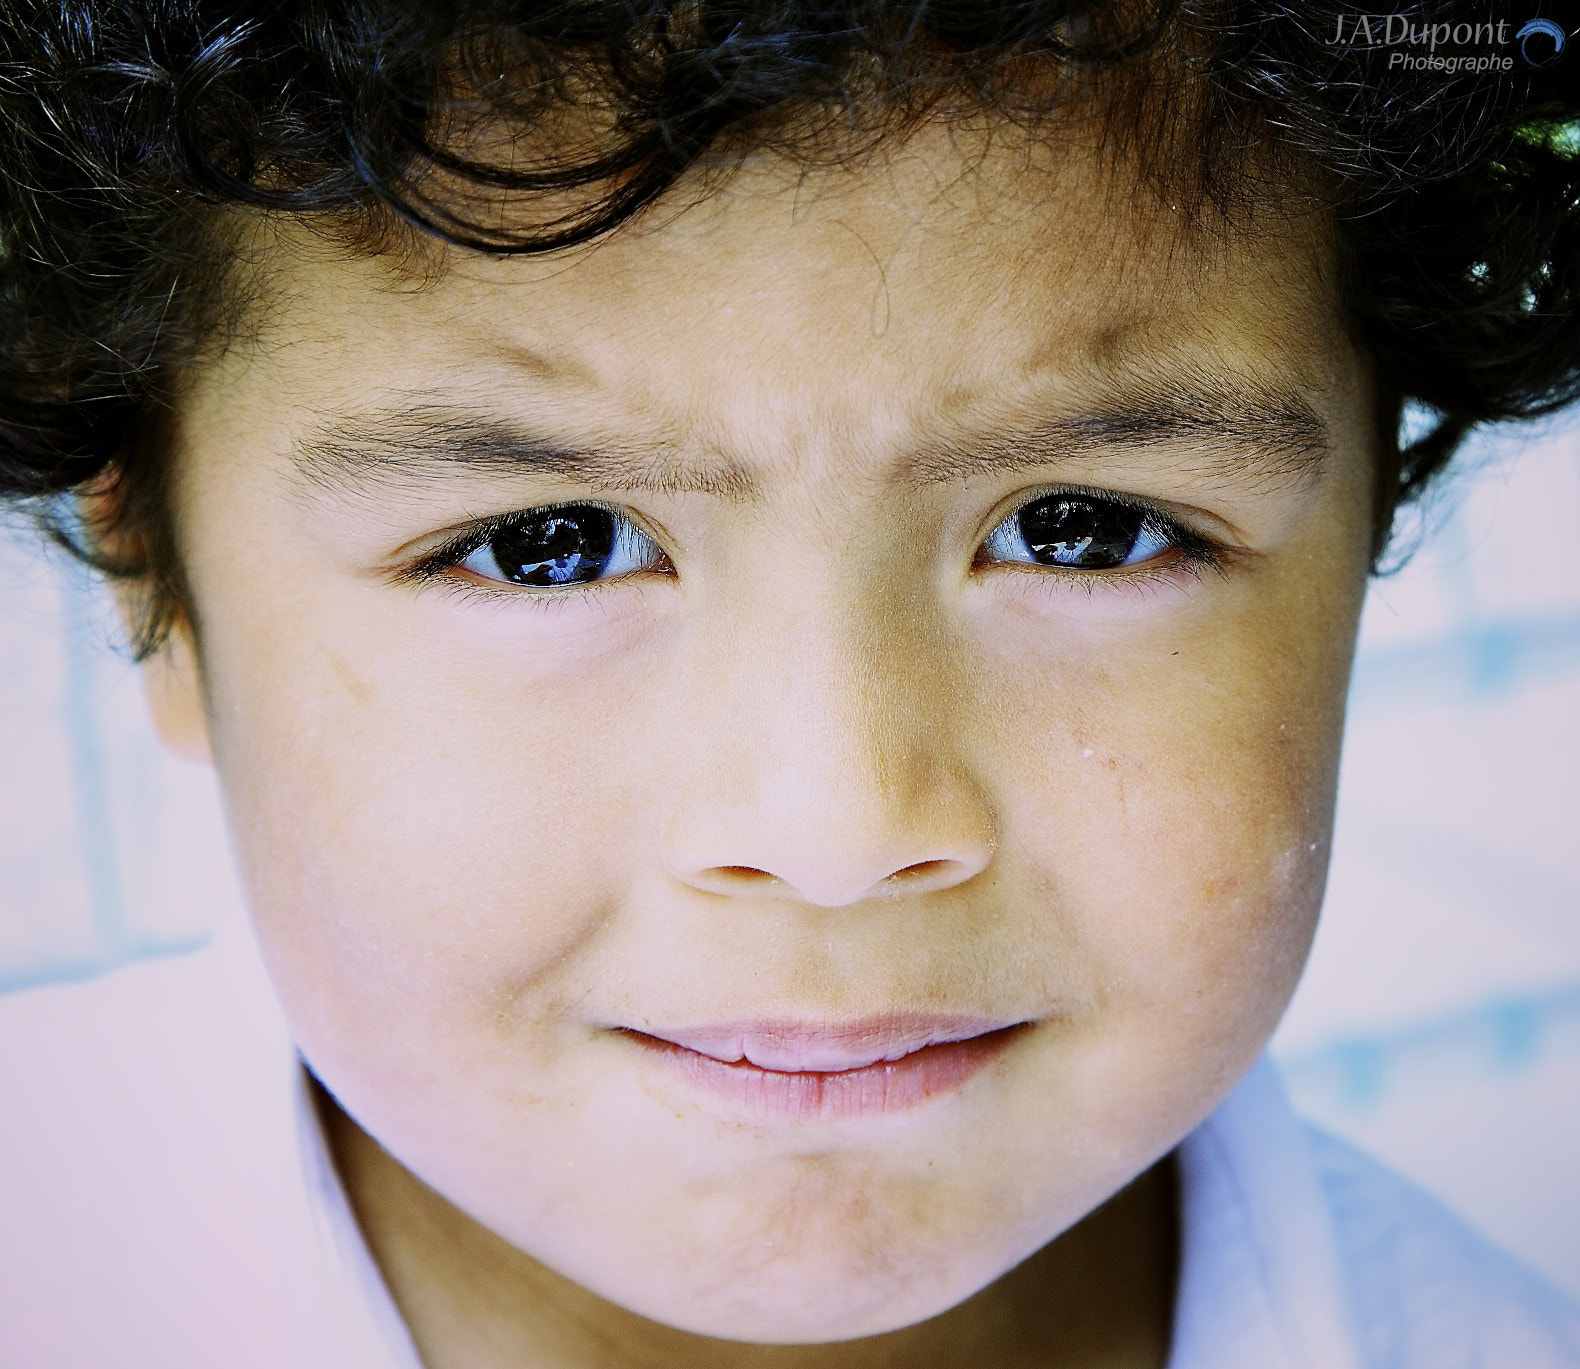 Photograph The boy by Jacques-Andre Dupont on 500px